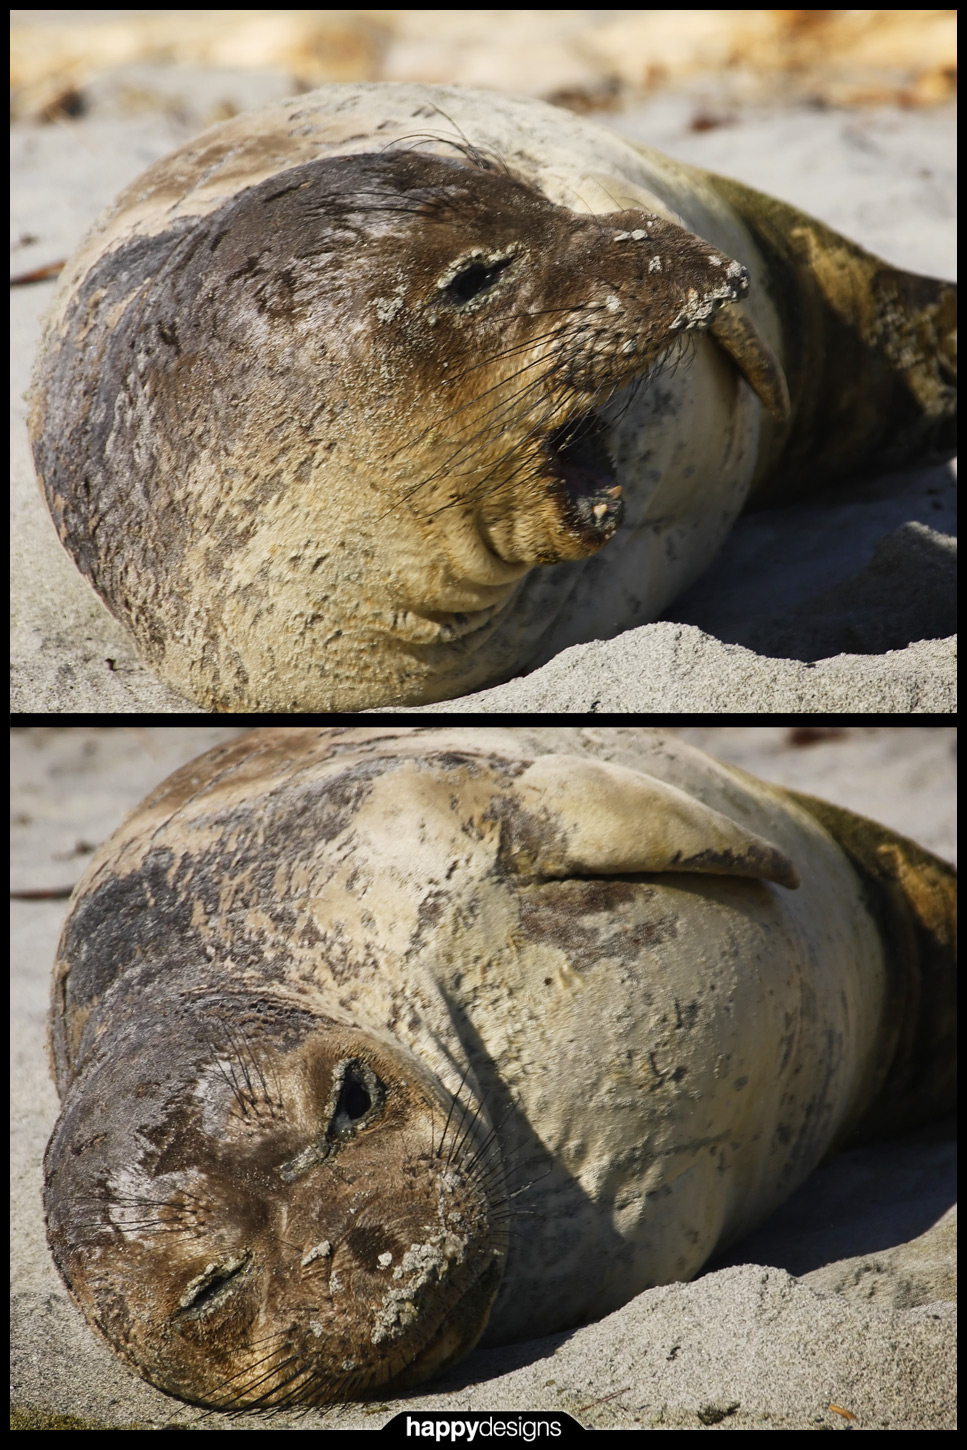 20090213 - Gyro seal is PISSED